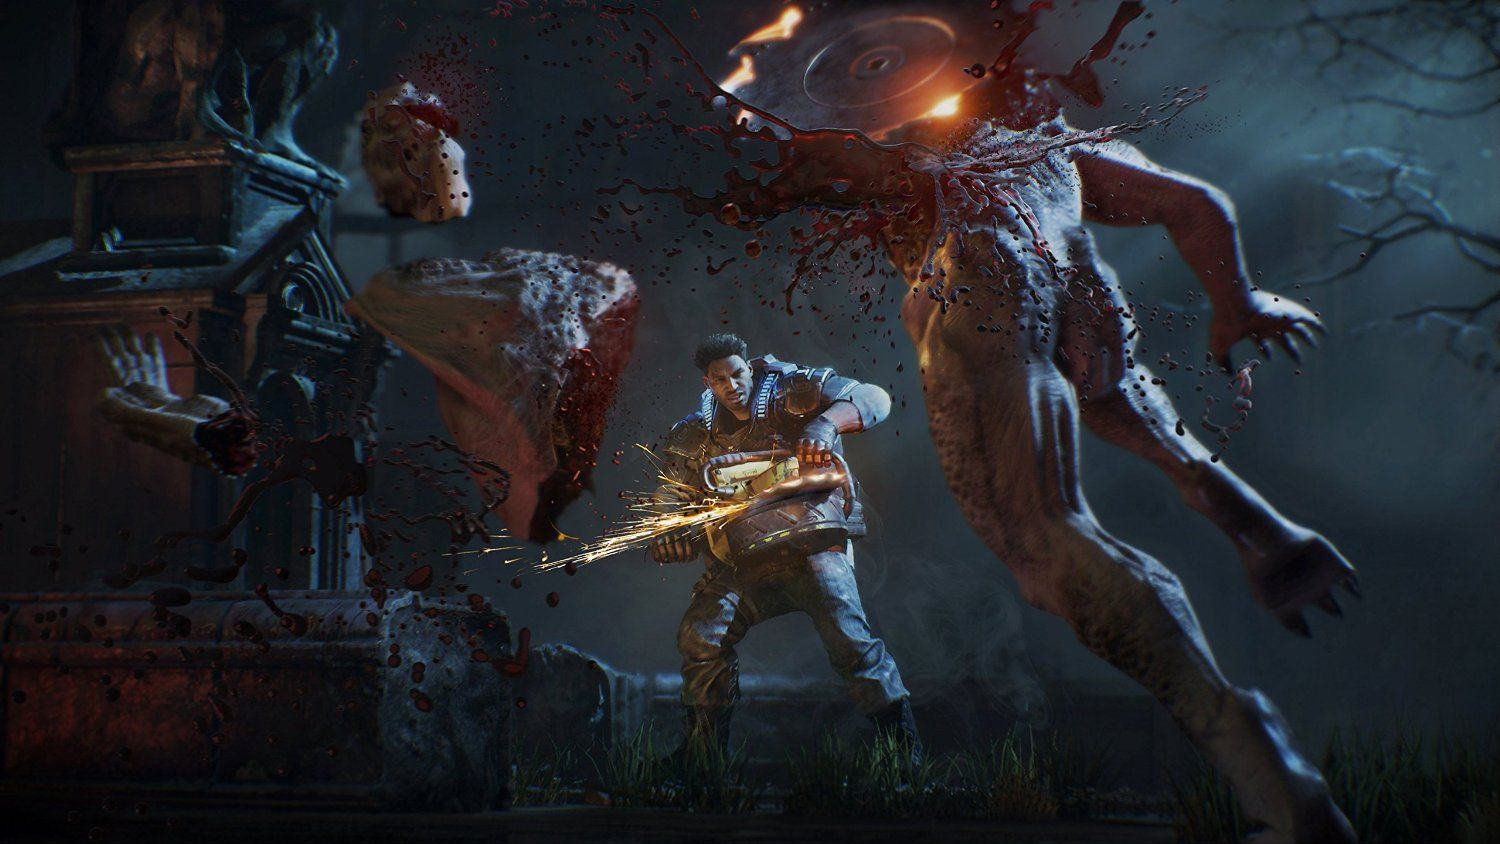 Gears of War 4 (Xbox One) - 10